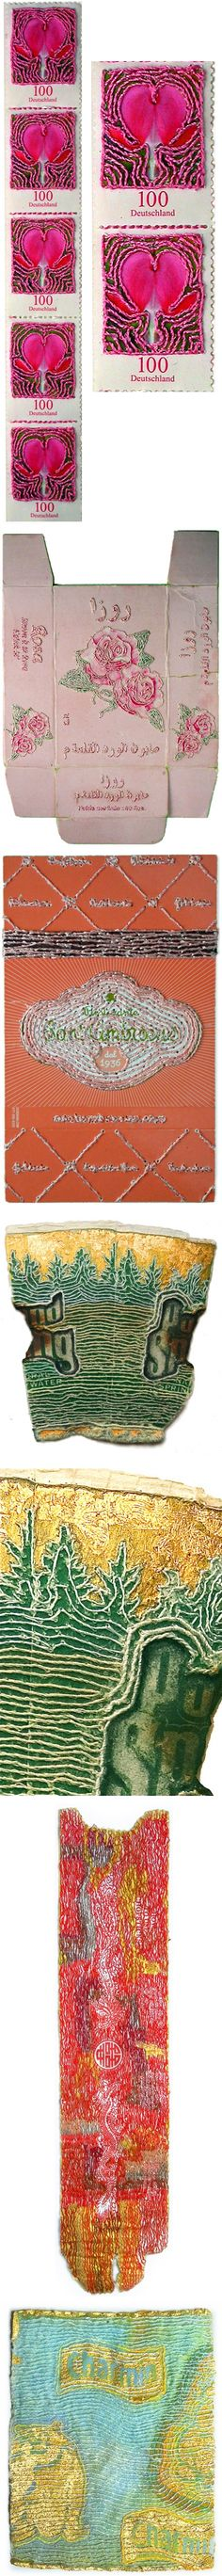 nicola ginzel - thread on found... stuff {stamps, old boxes, toilet paper etc}